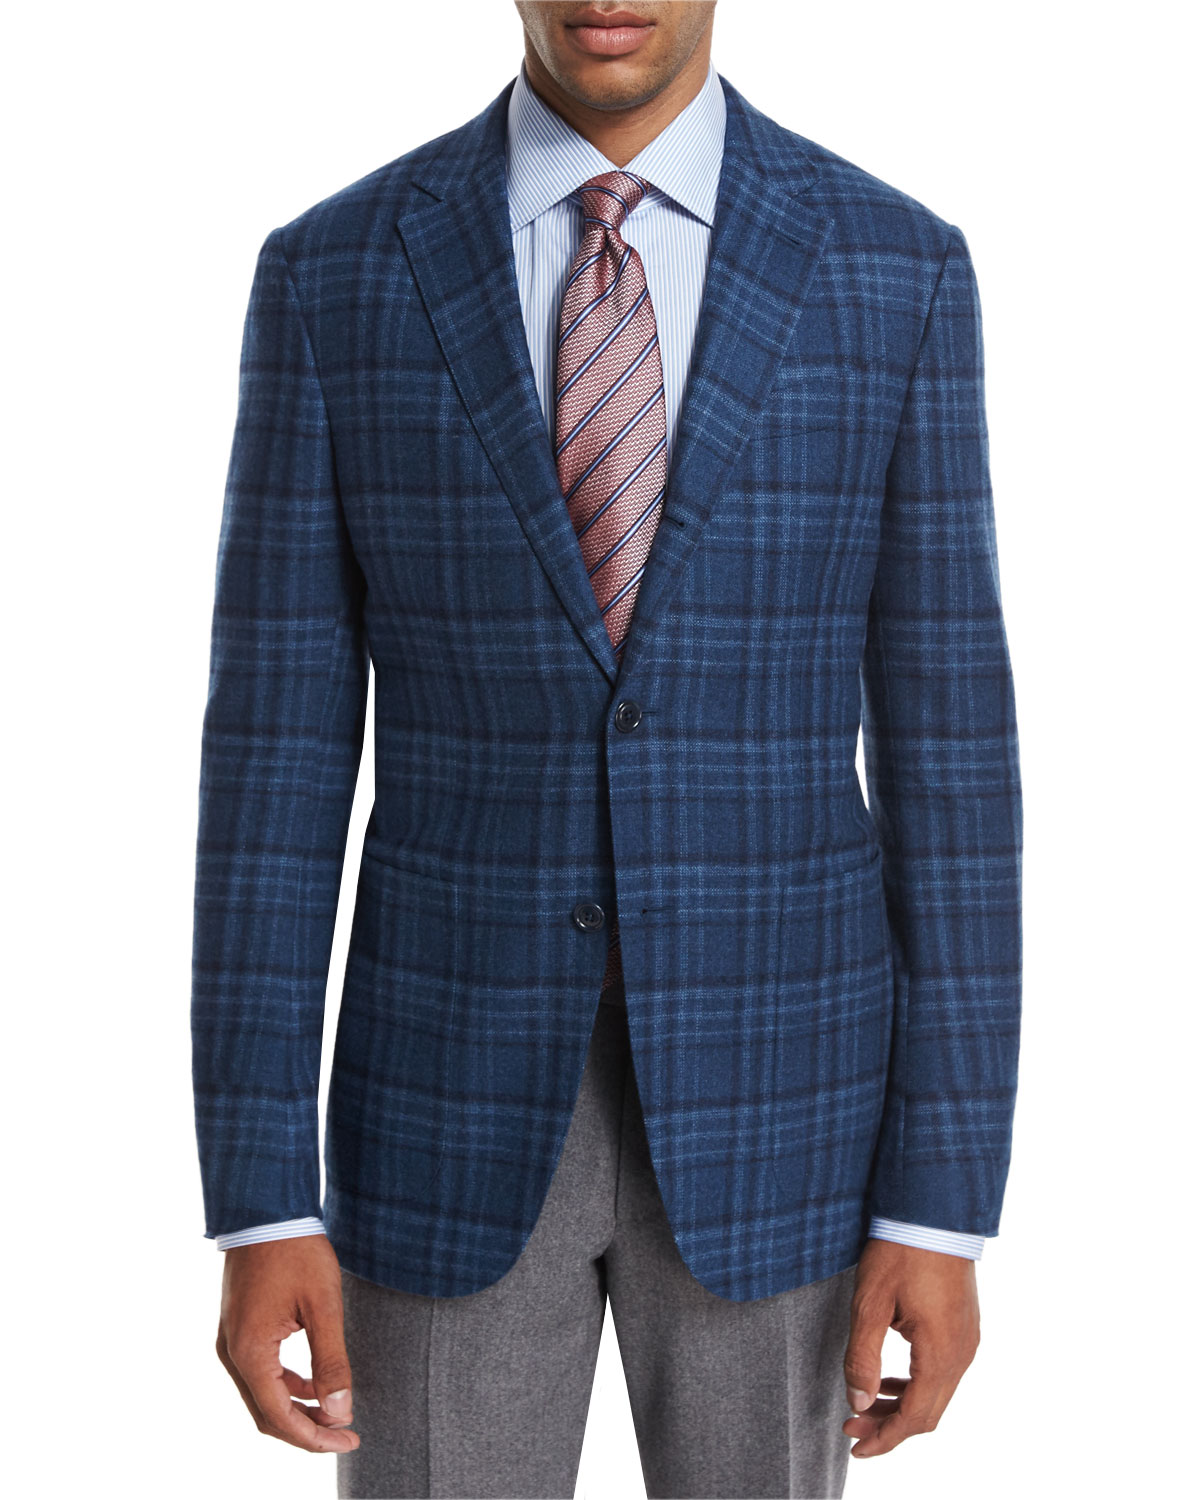 Ermenegildo Zegna Plaid Wool Cashmere Sport Coat Teal